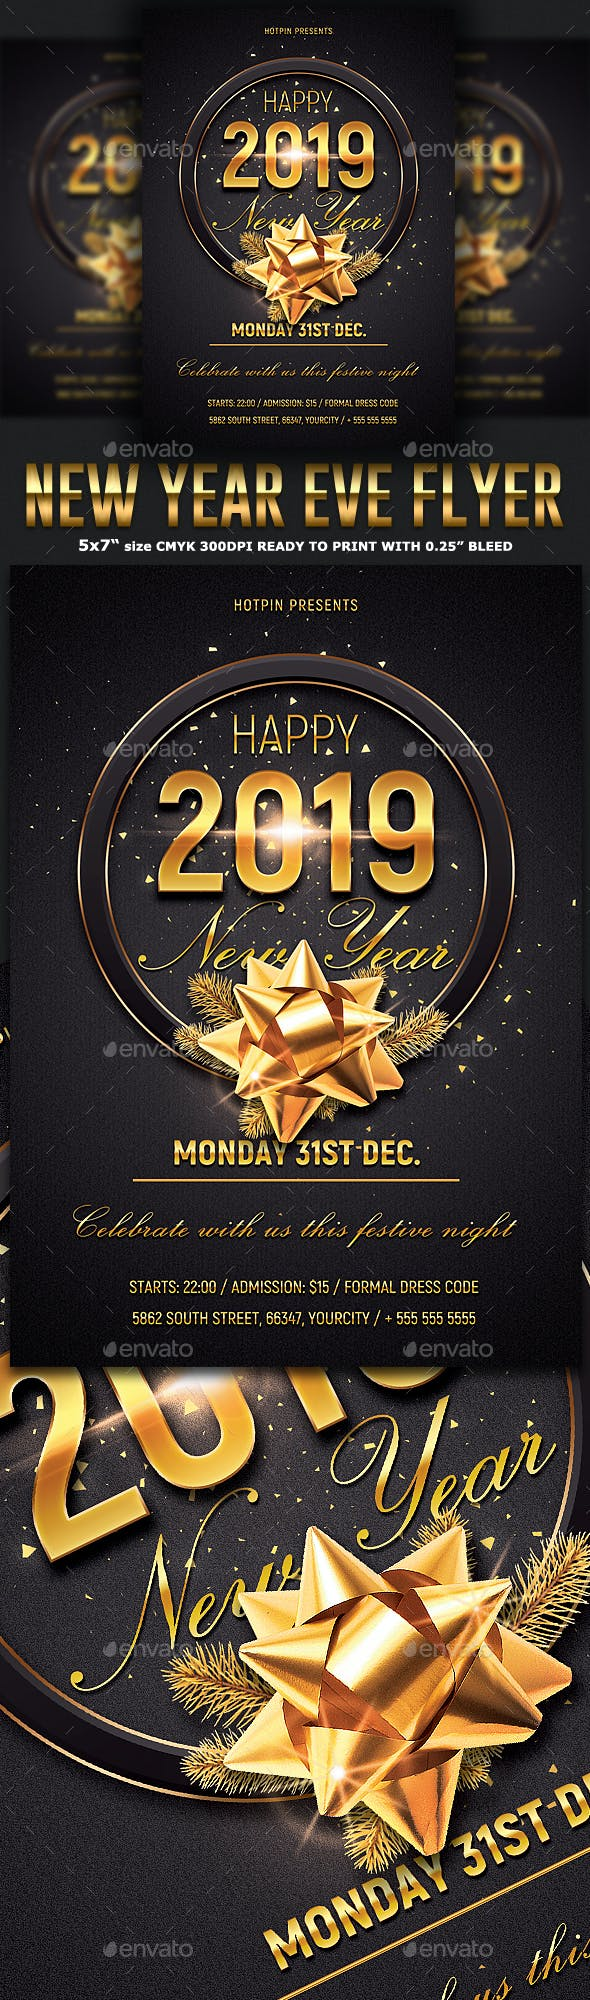 new year eve psd flyer clubs parties events